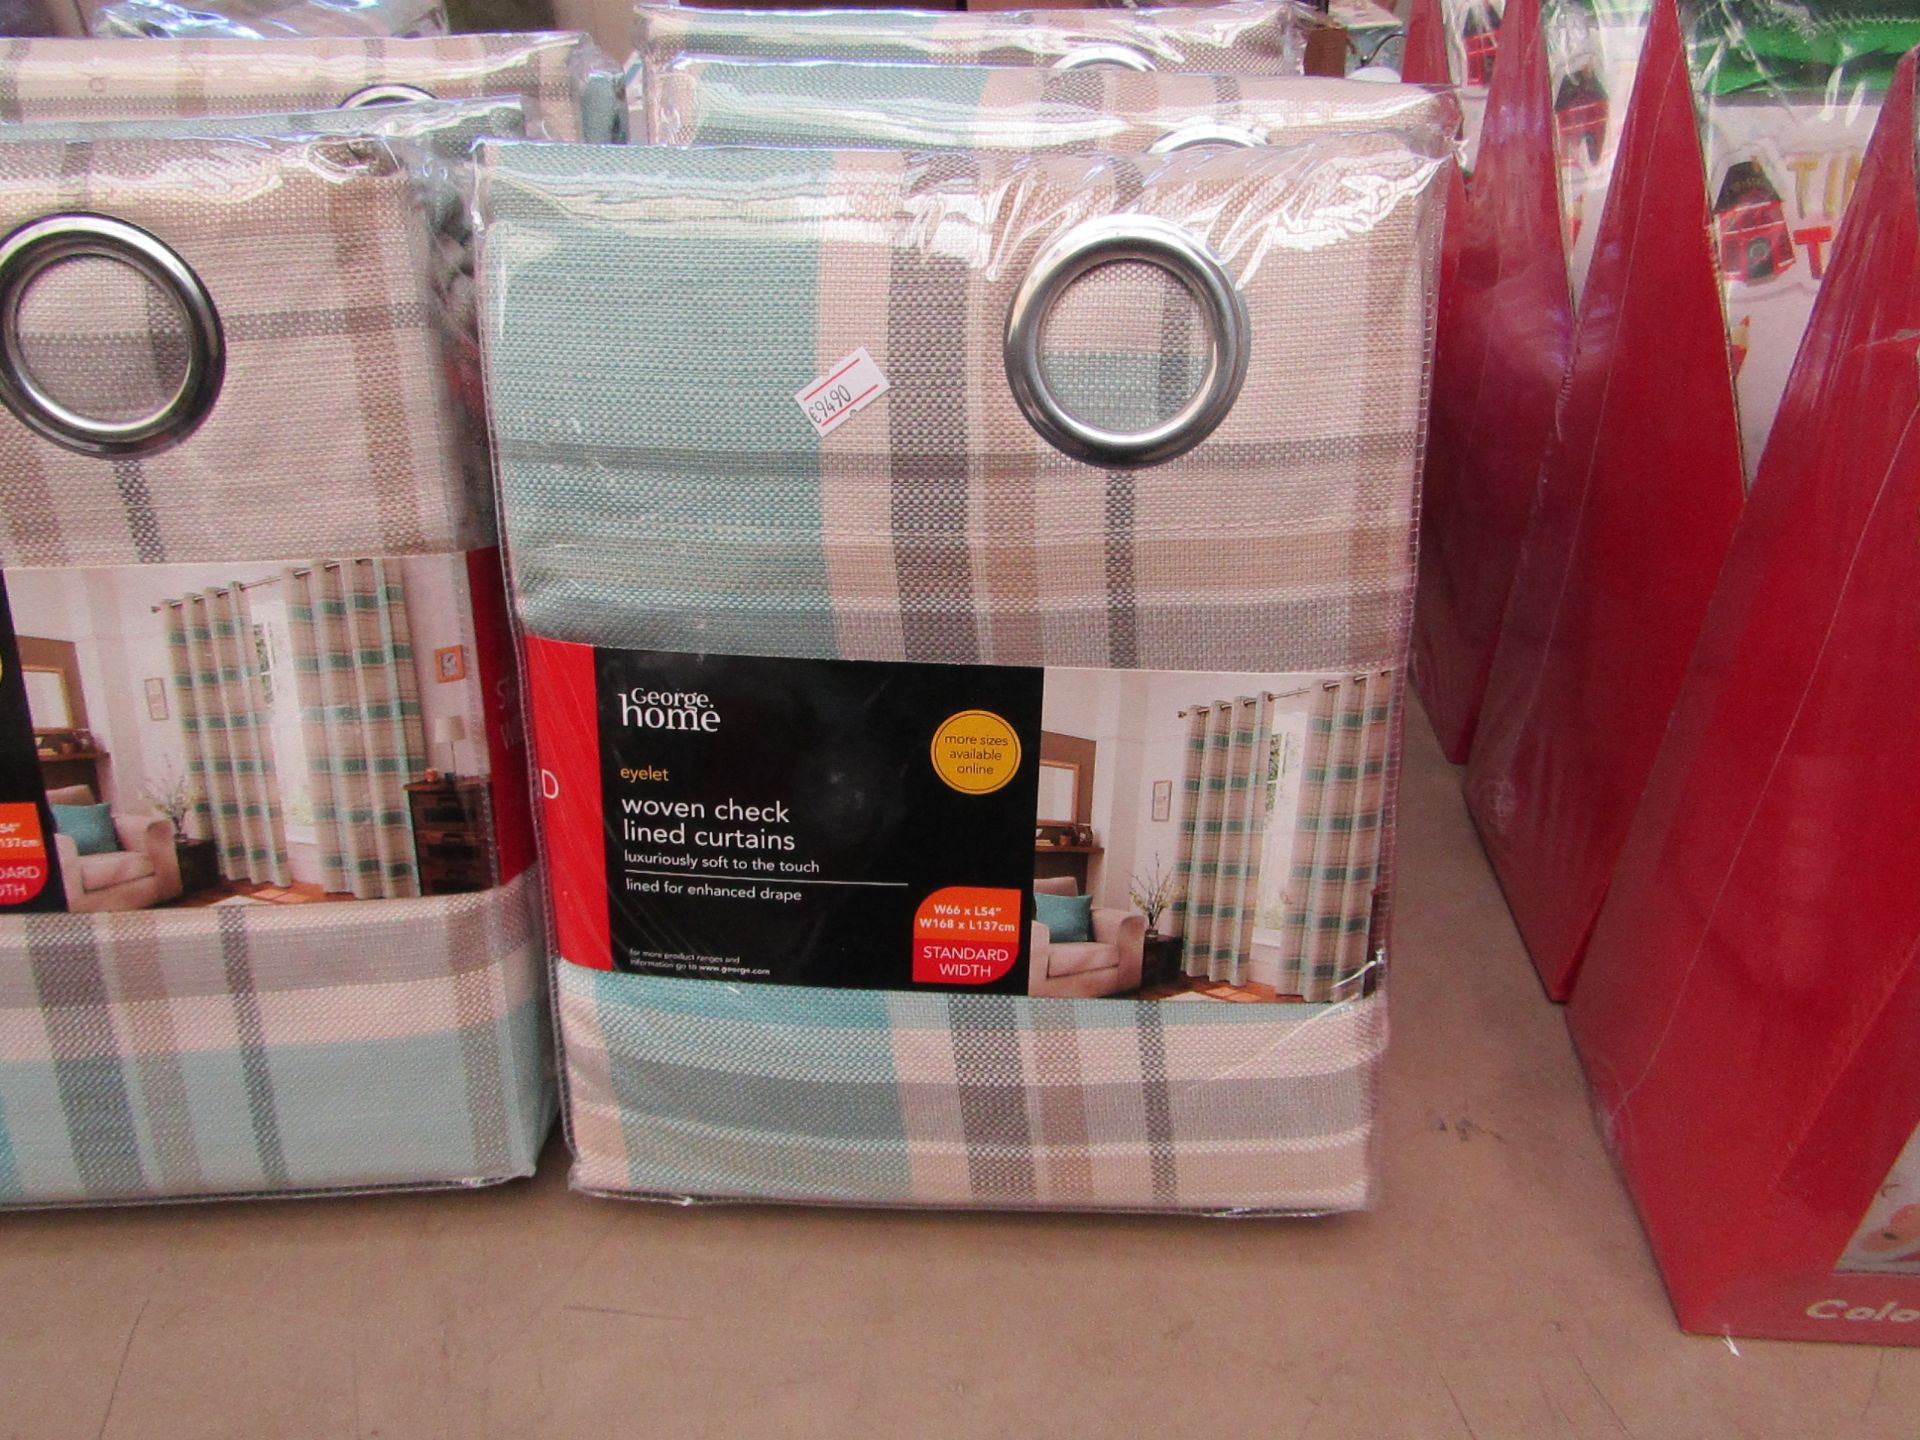 """Lot 1 - George Home woven checkered lined curtains, W 66 x L 54"""", new and packaged."""